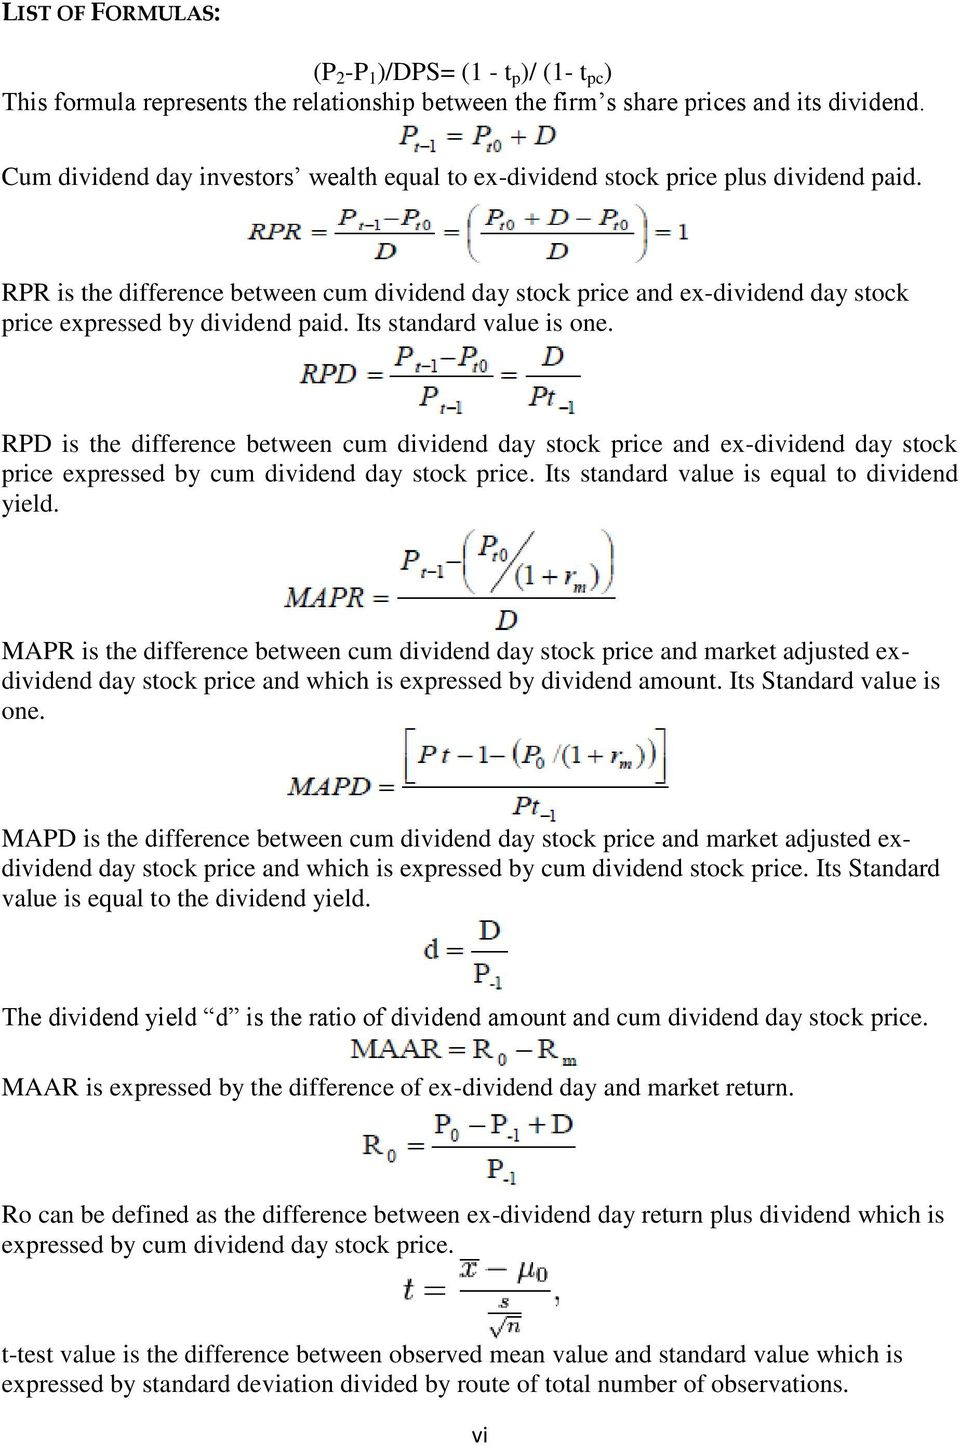 RPR is the difference between cum dividend day stock price and ex-dividend day stock price expressed by dividend paid. Its standard value is one.